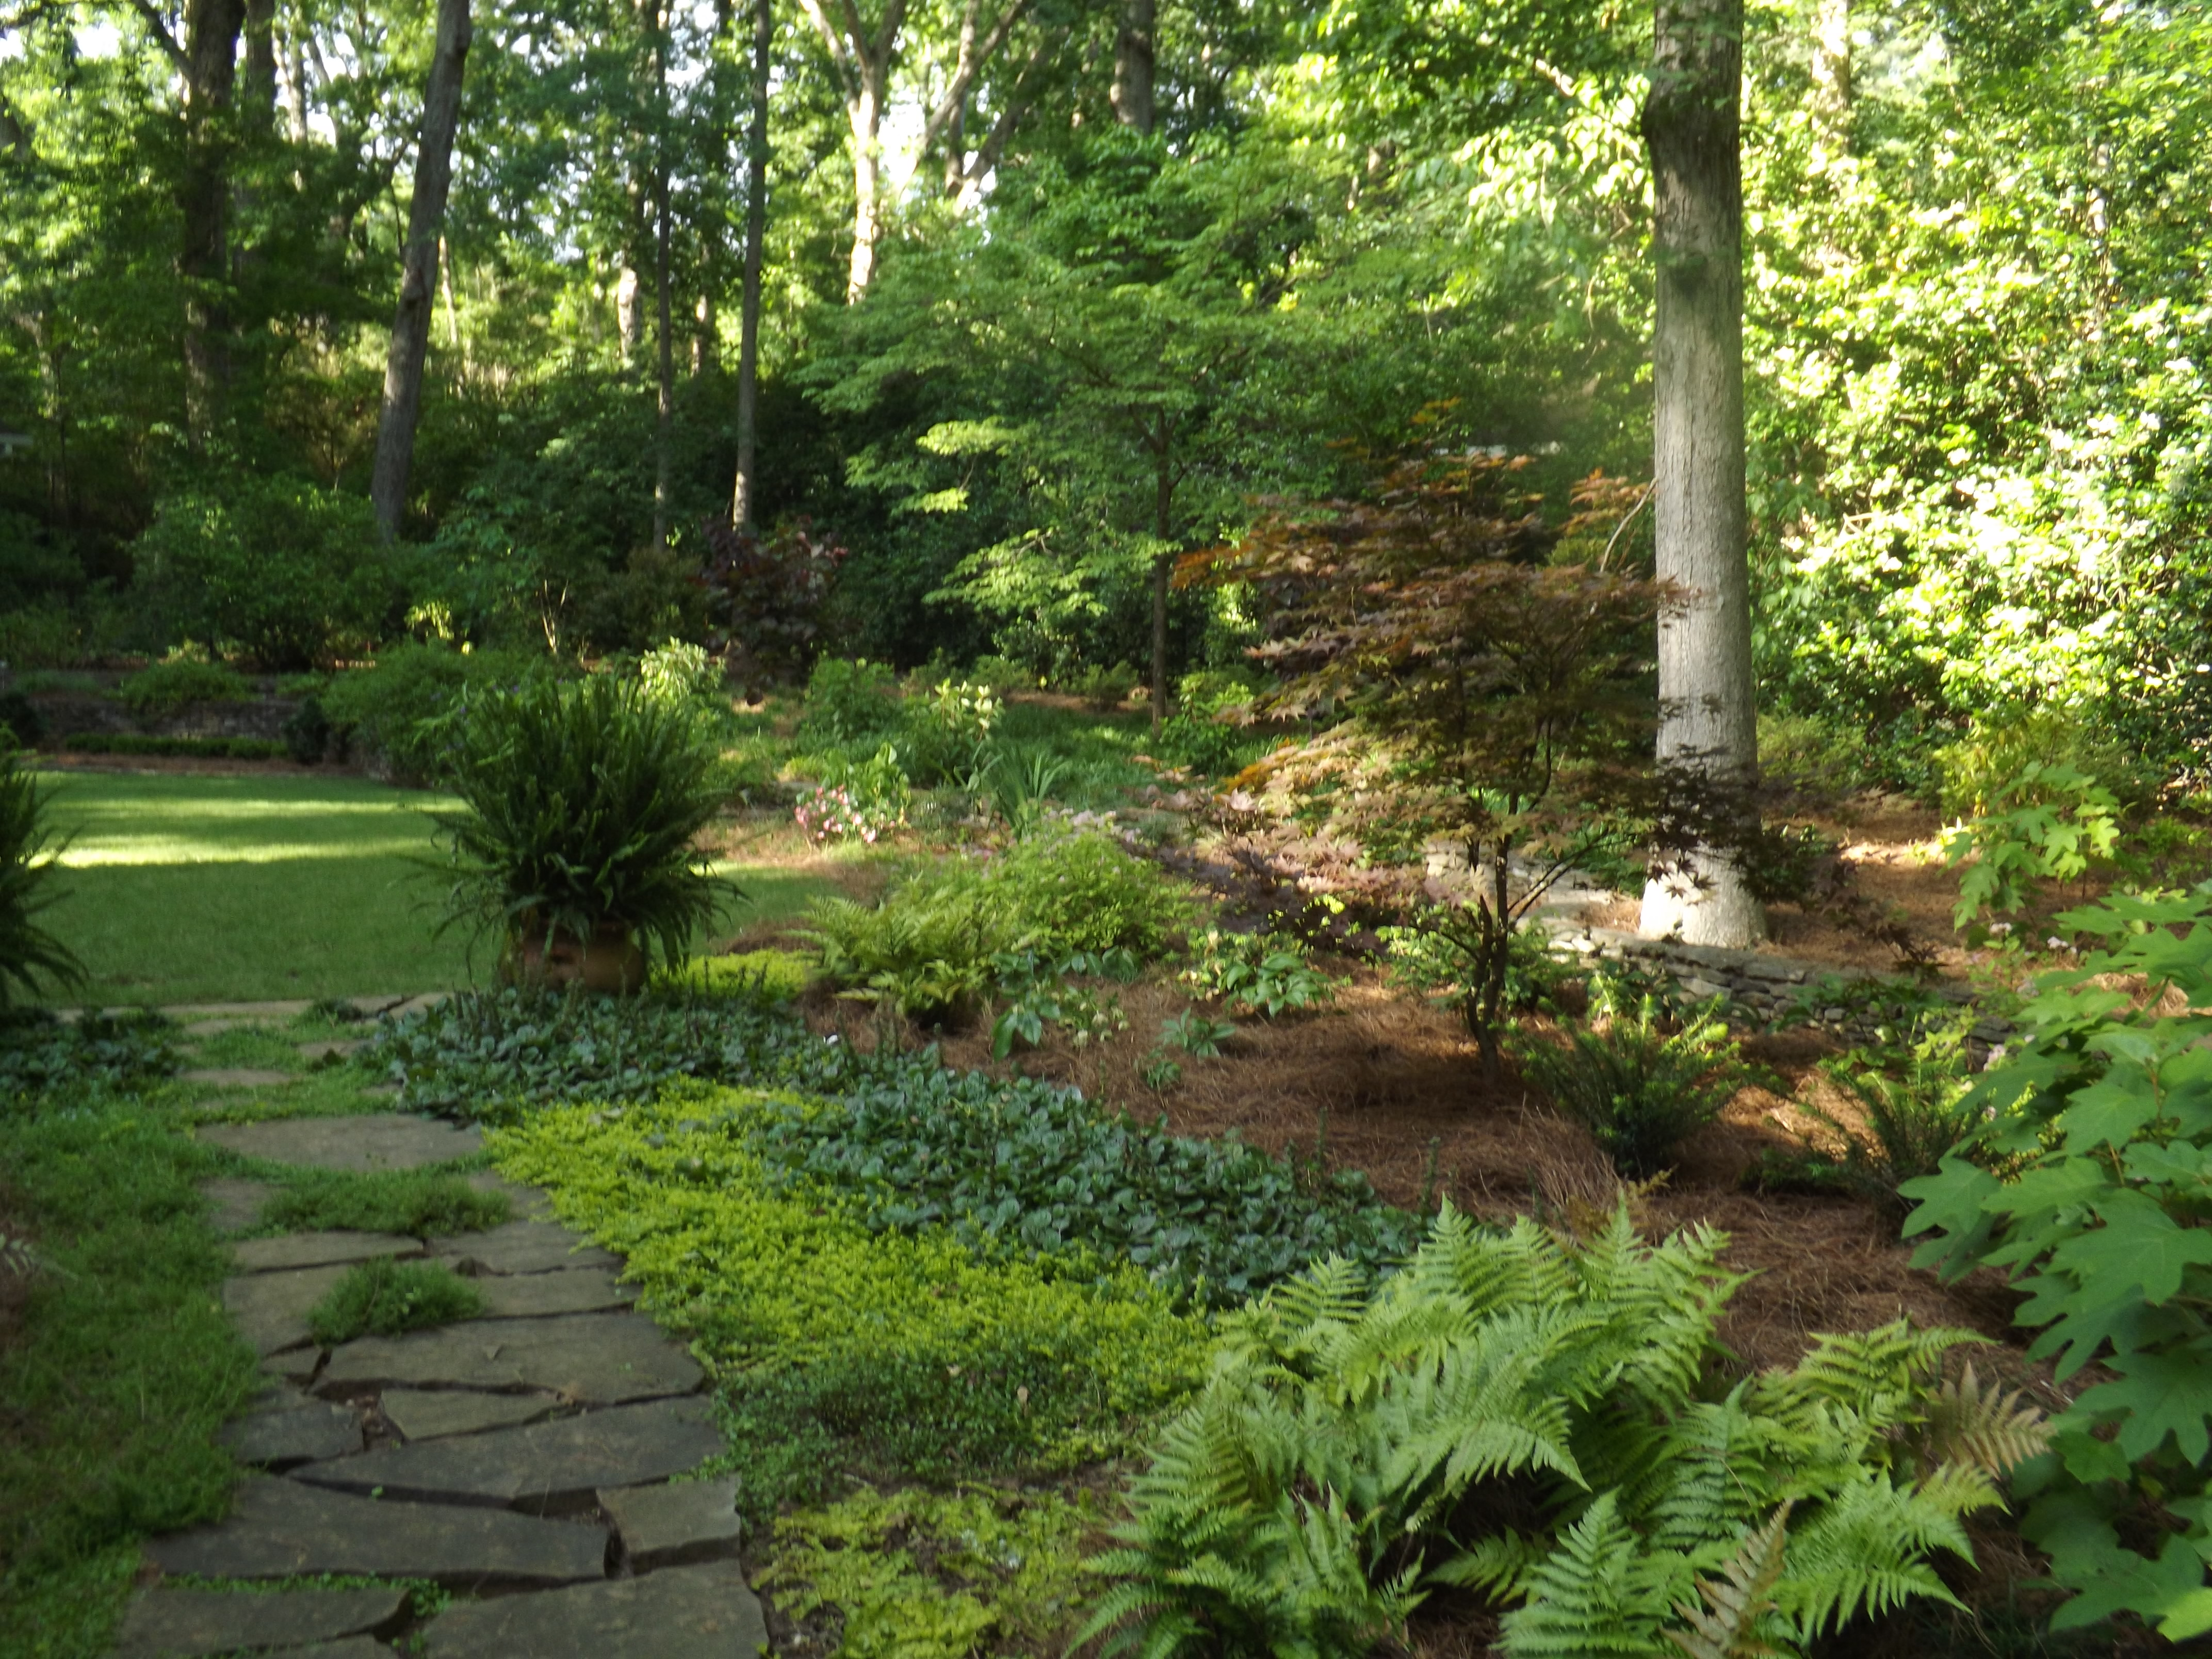 Southern-style garden restored